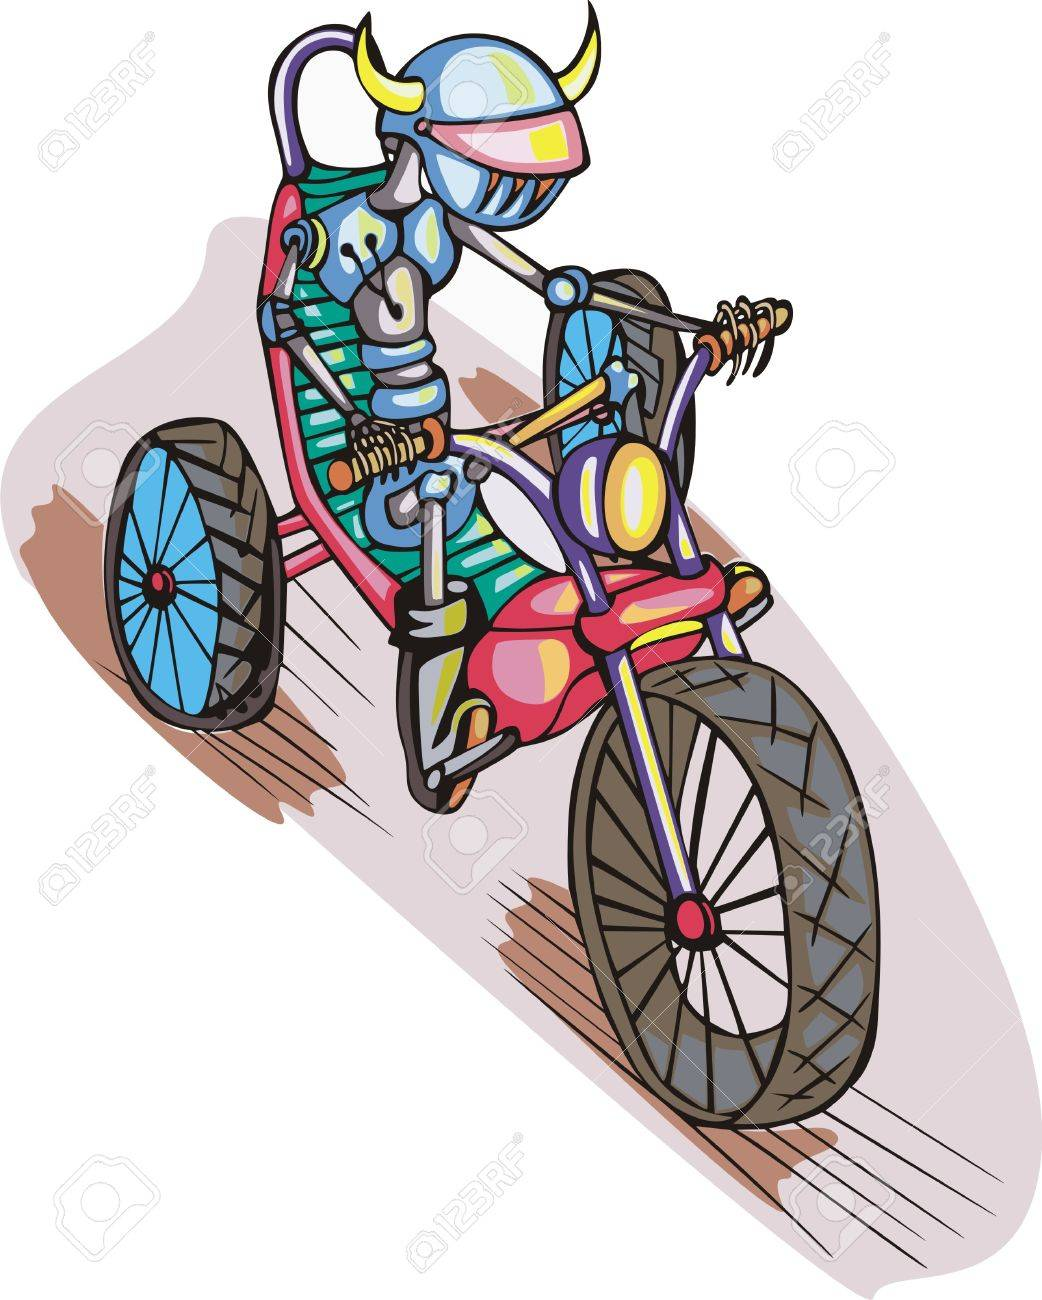 1042x1300 Robot On Bike Cartoon Royalty Free Cliparts, Vectors, And Stock